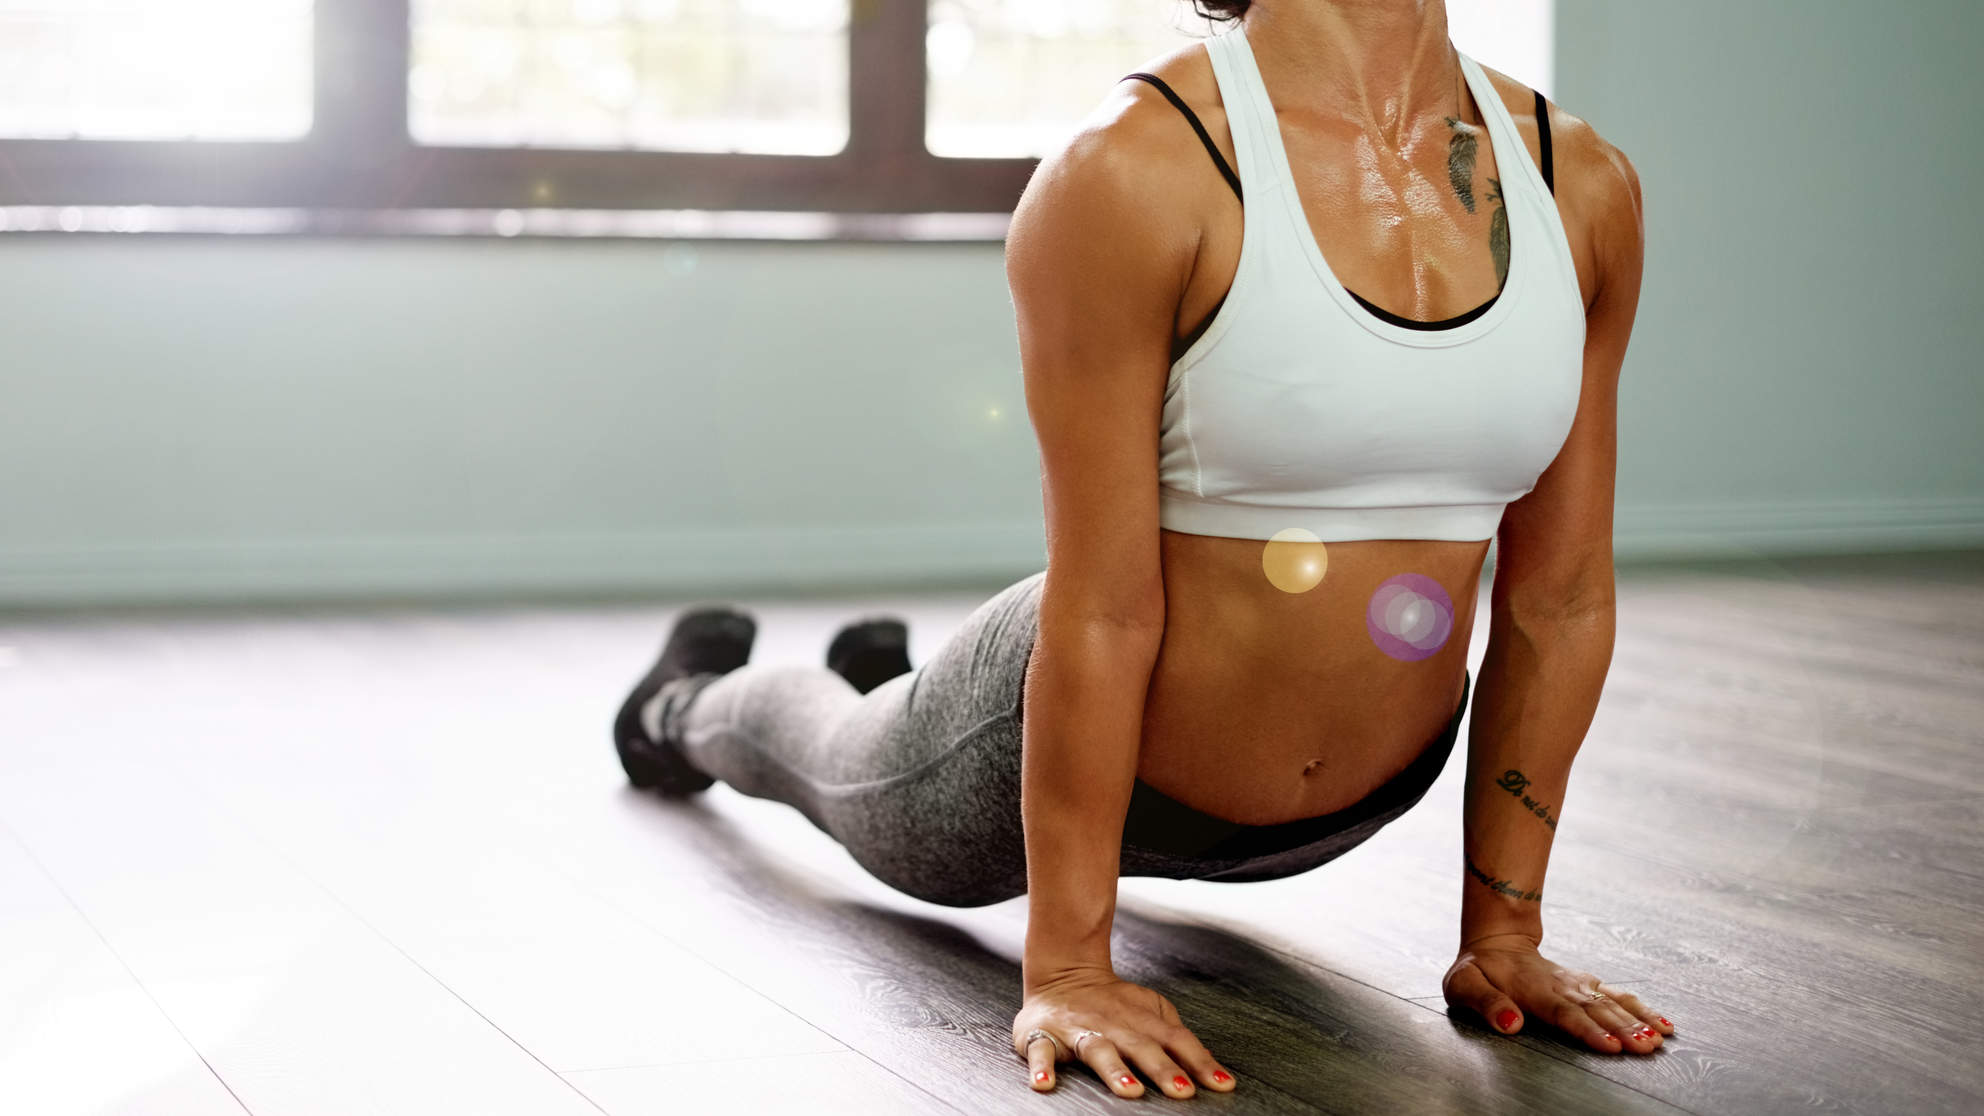 Pilates and Exercise Can Lead To A 'Coregasm'